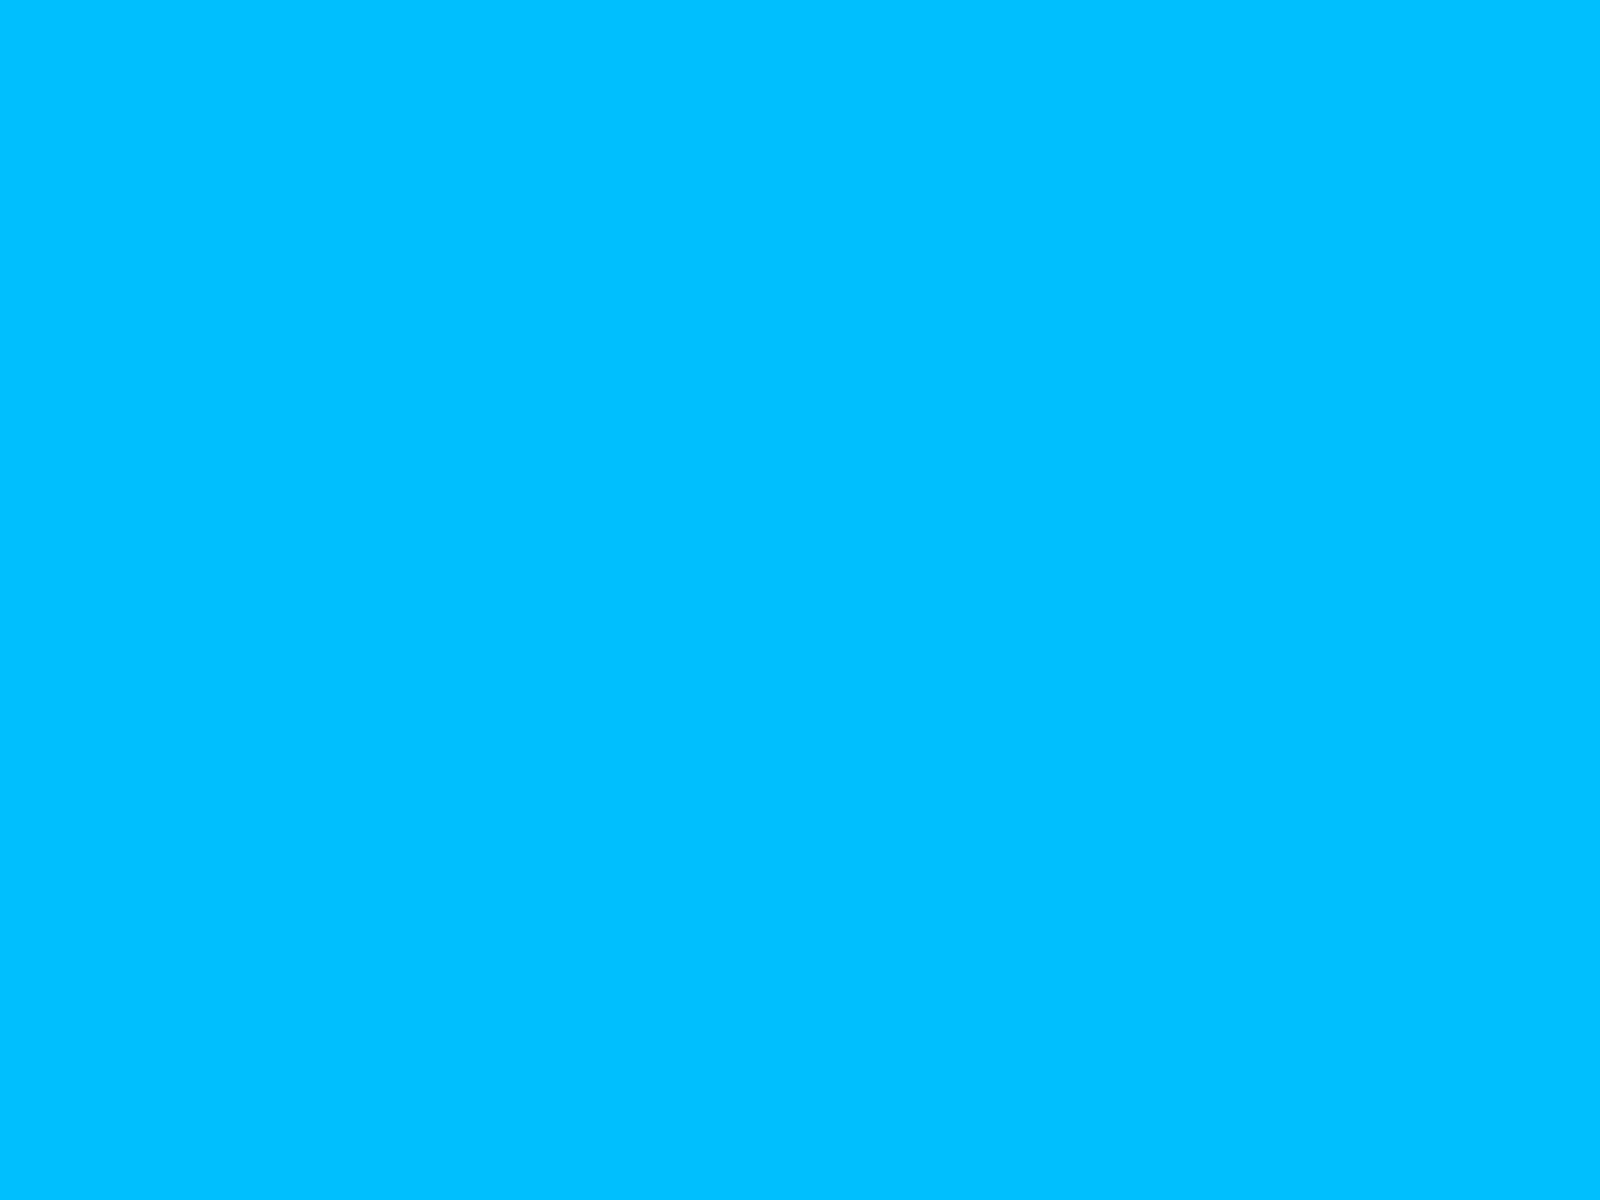 1600x1200 resolution Deep Sky Blue solid color background view 1600x1200